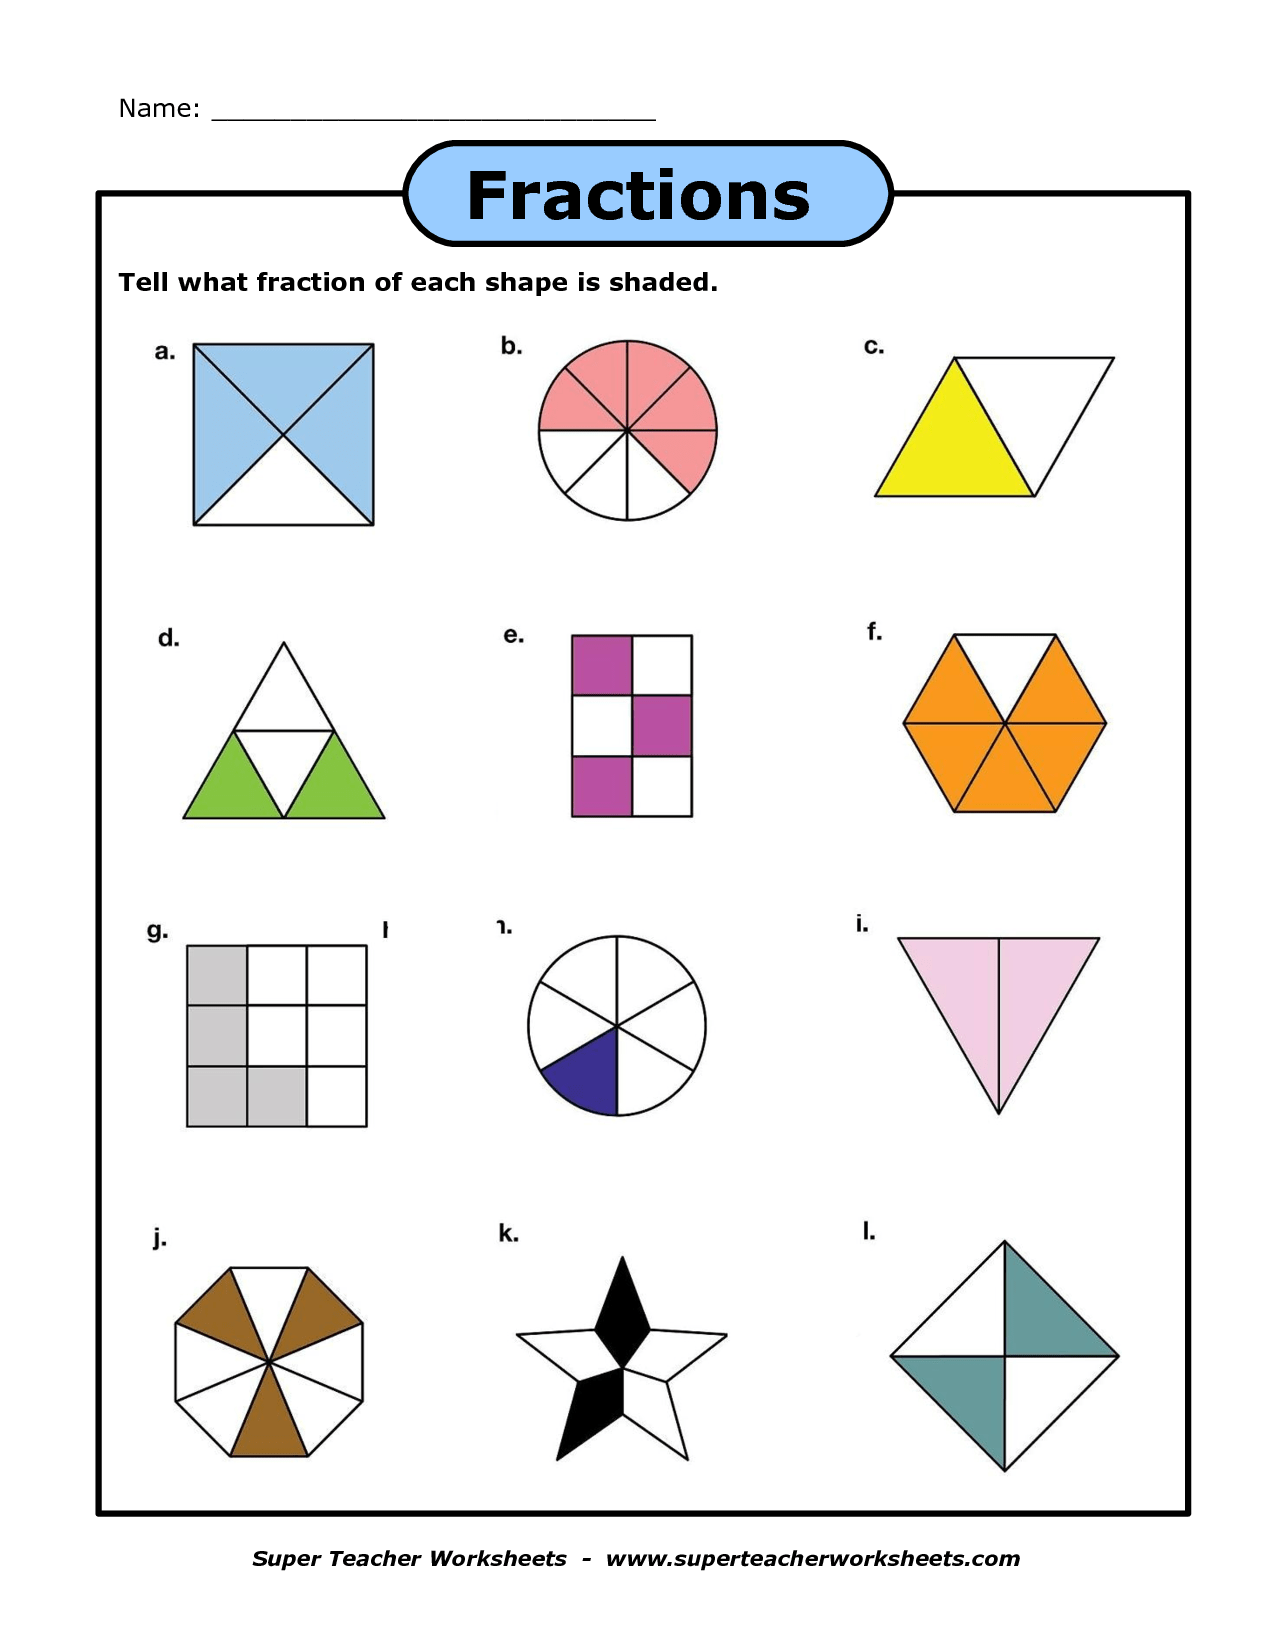 Worksheet On Identifying Fractions